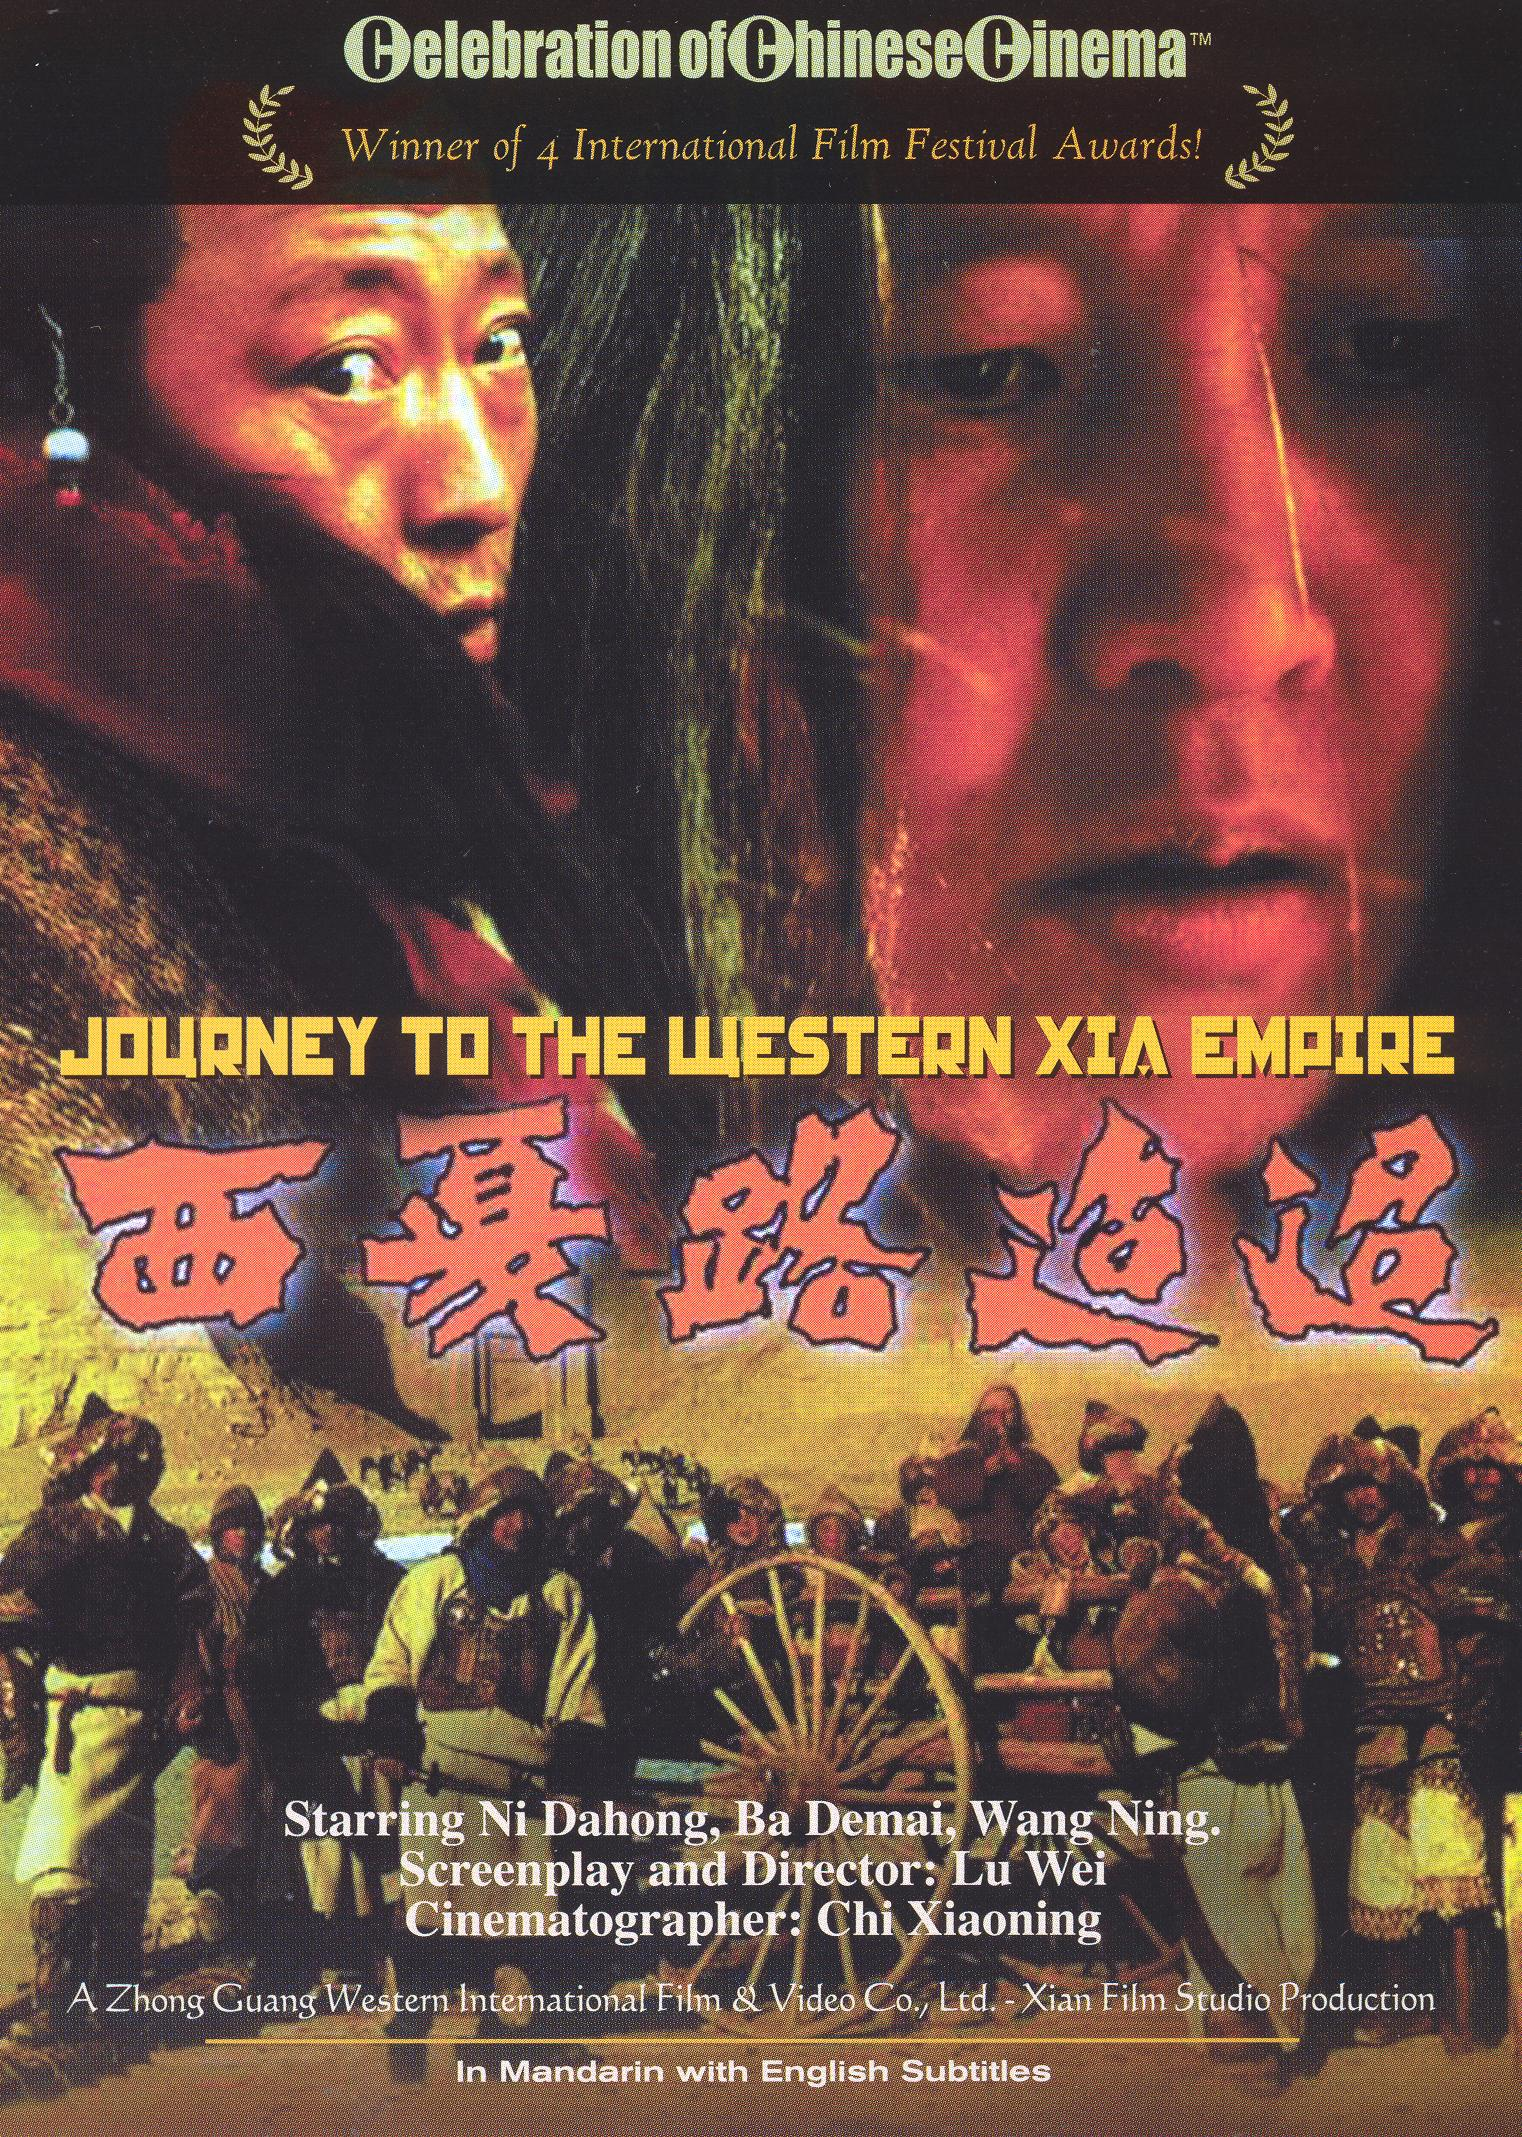 The Journey to the Western Xia Empire